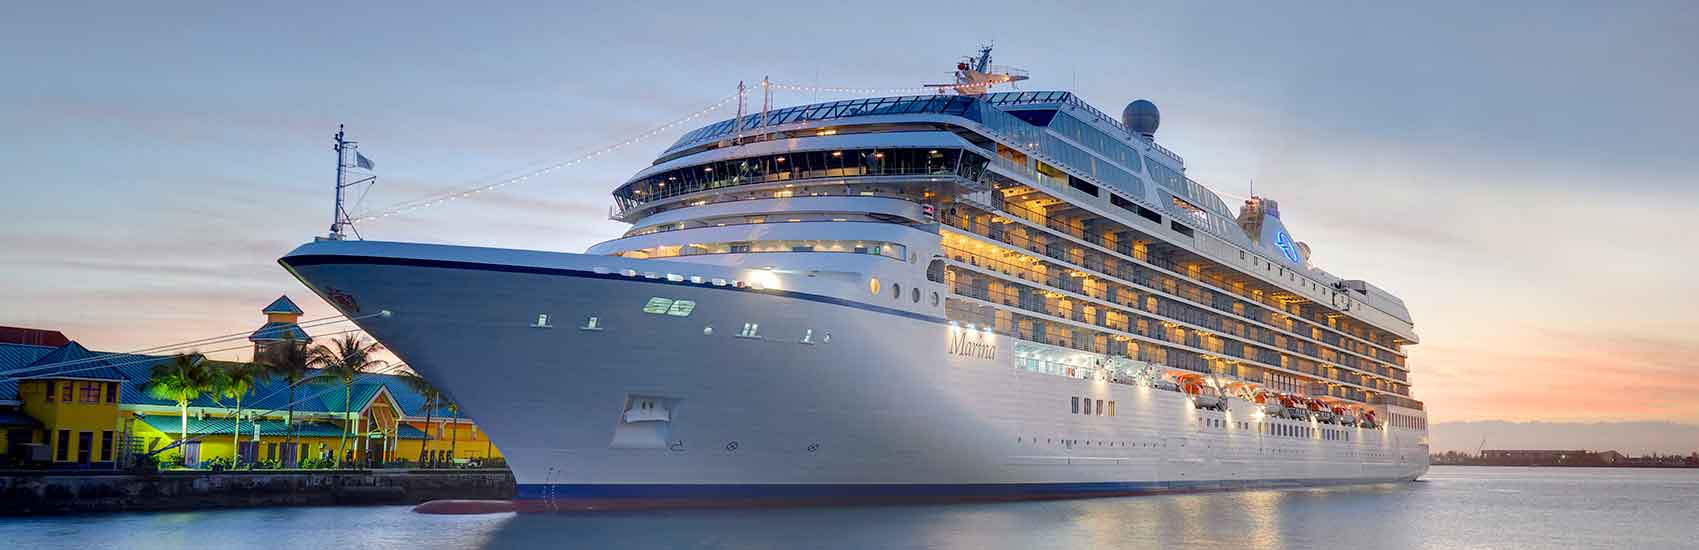 Offre Virtuoso exclusive d'Oceania Cruises